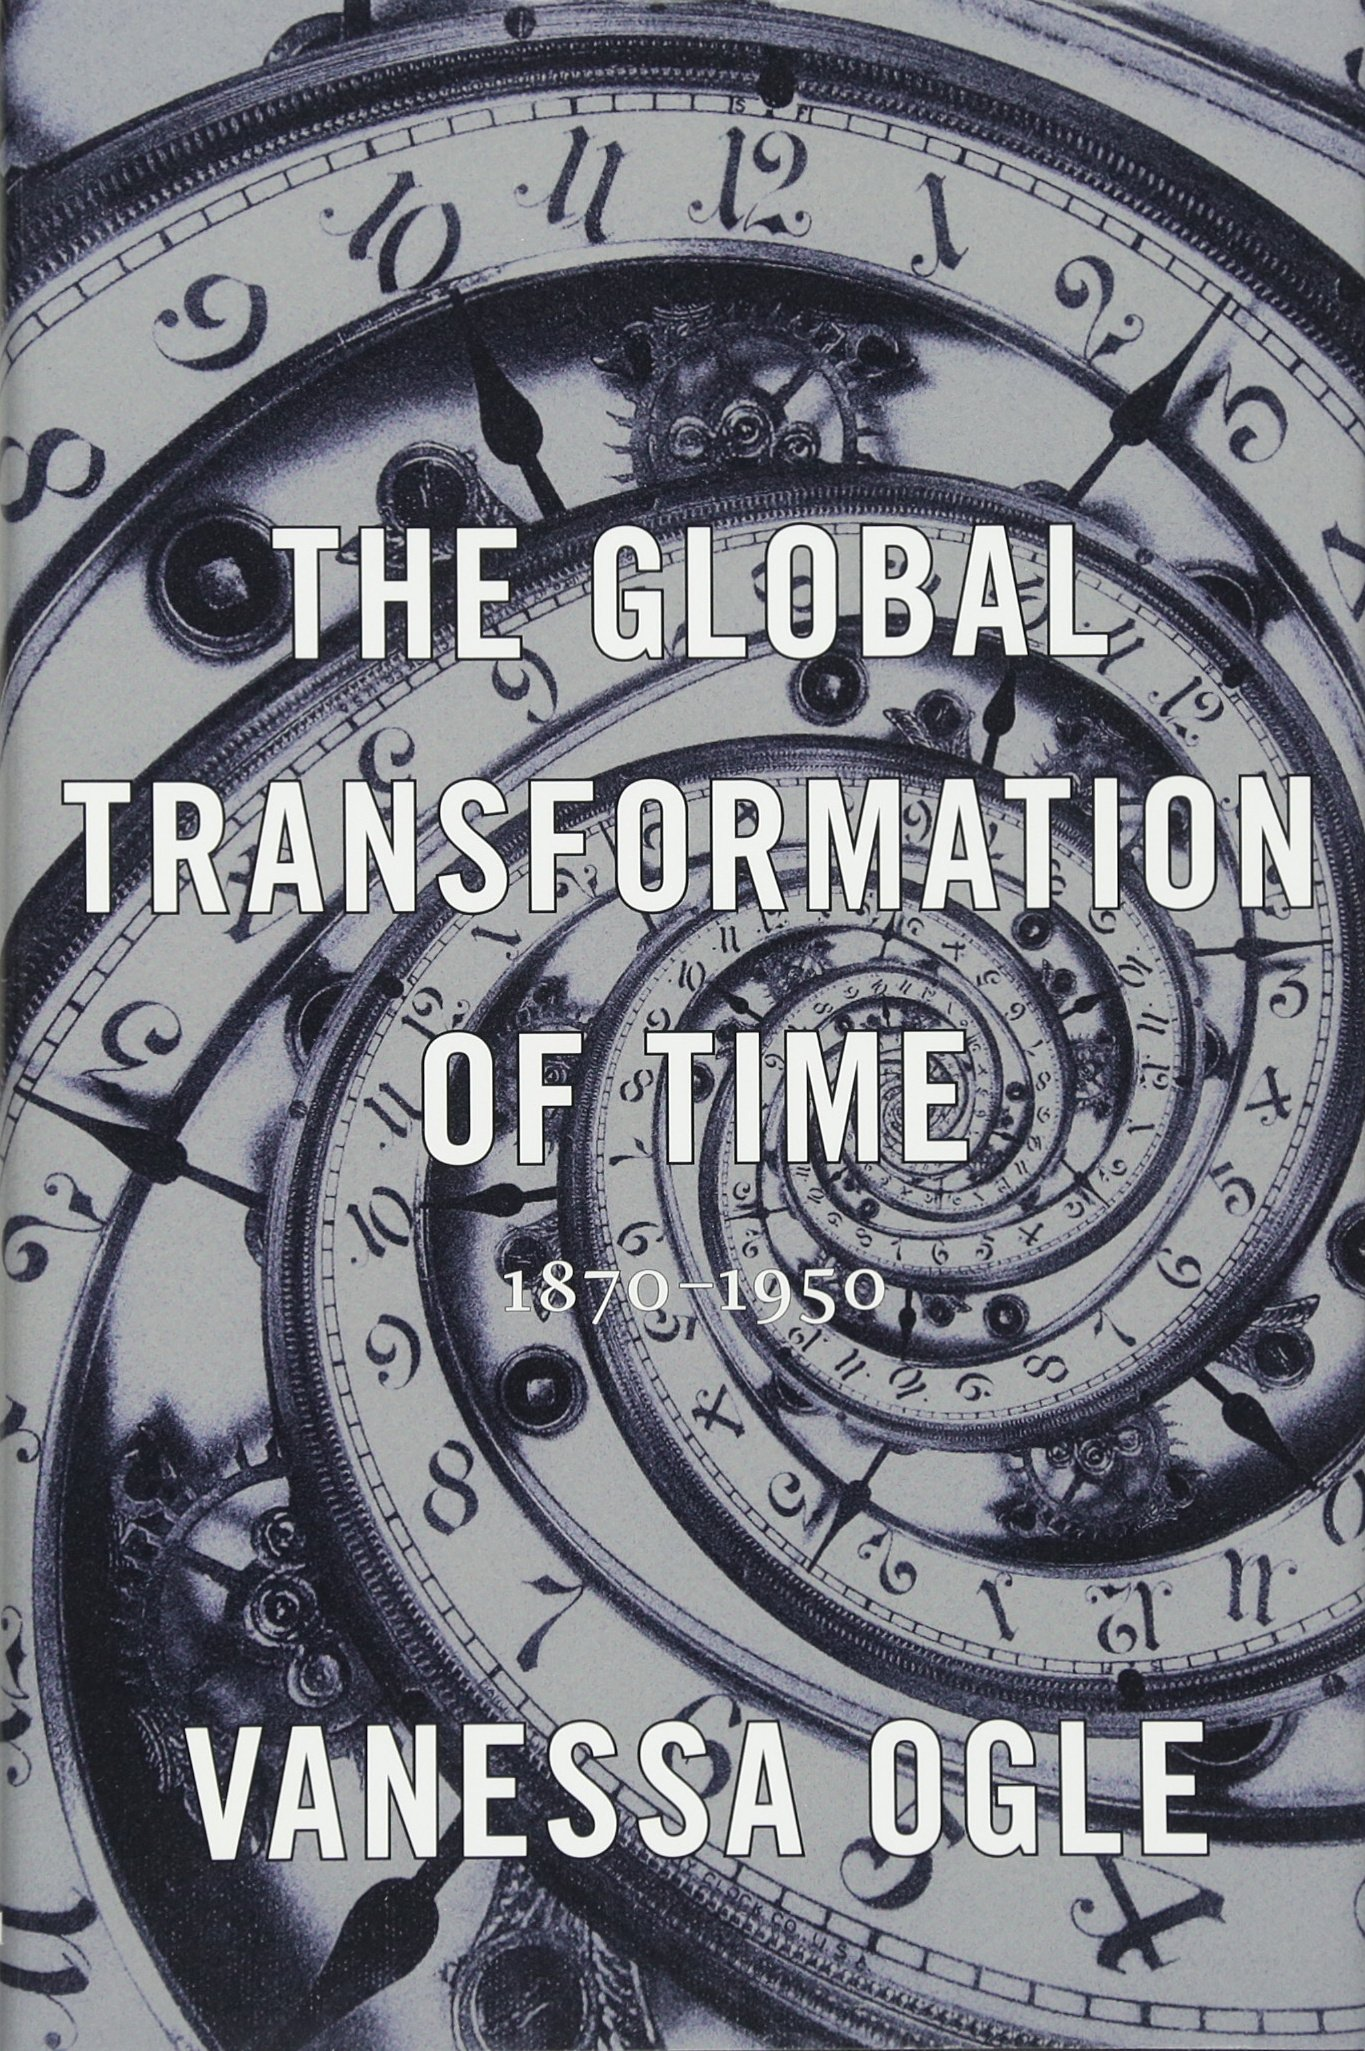 The Global Transformation of Time: 1870–1950